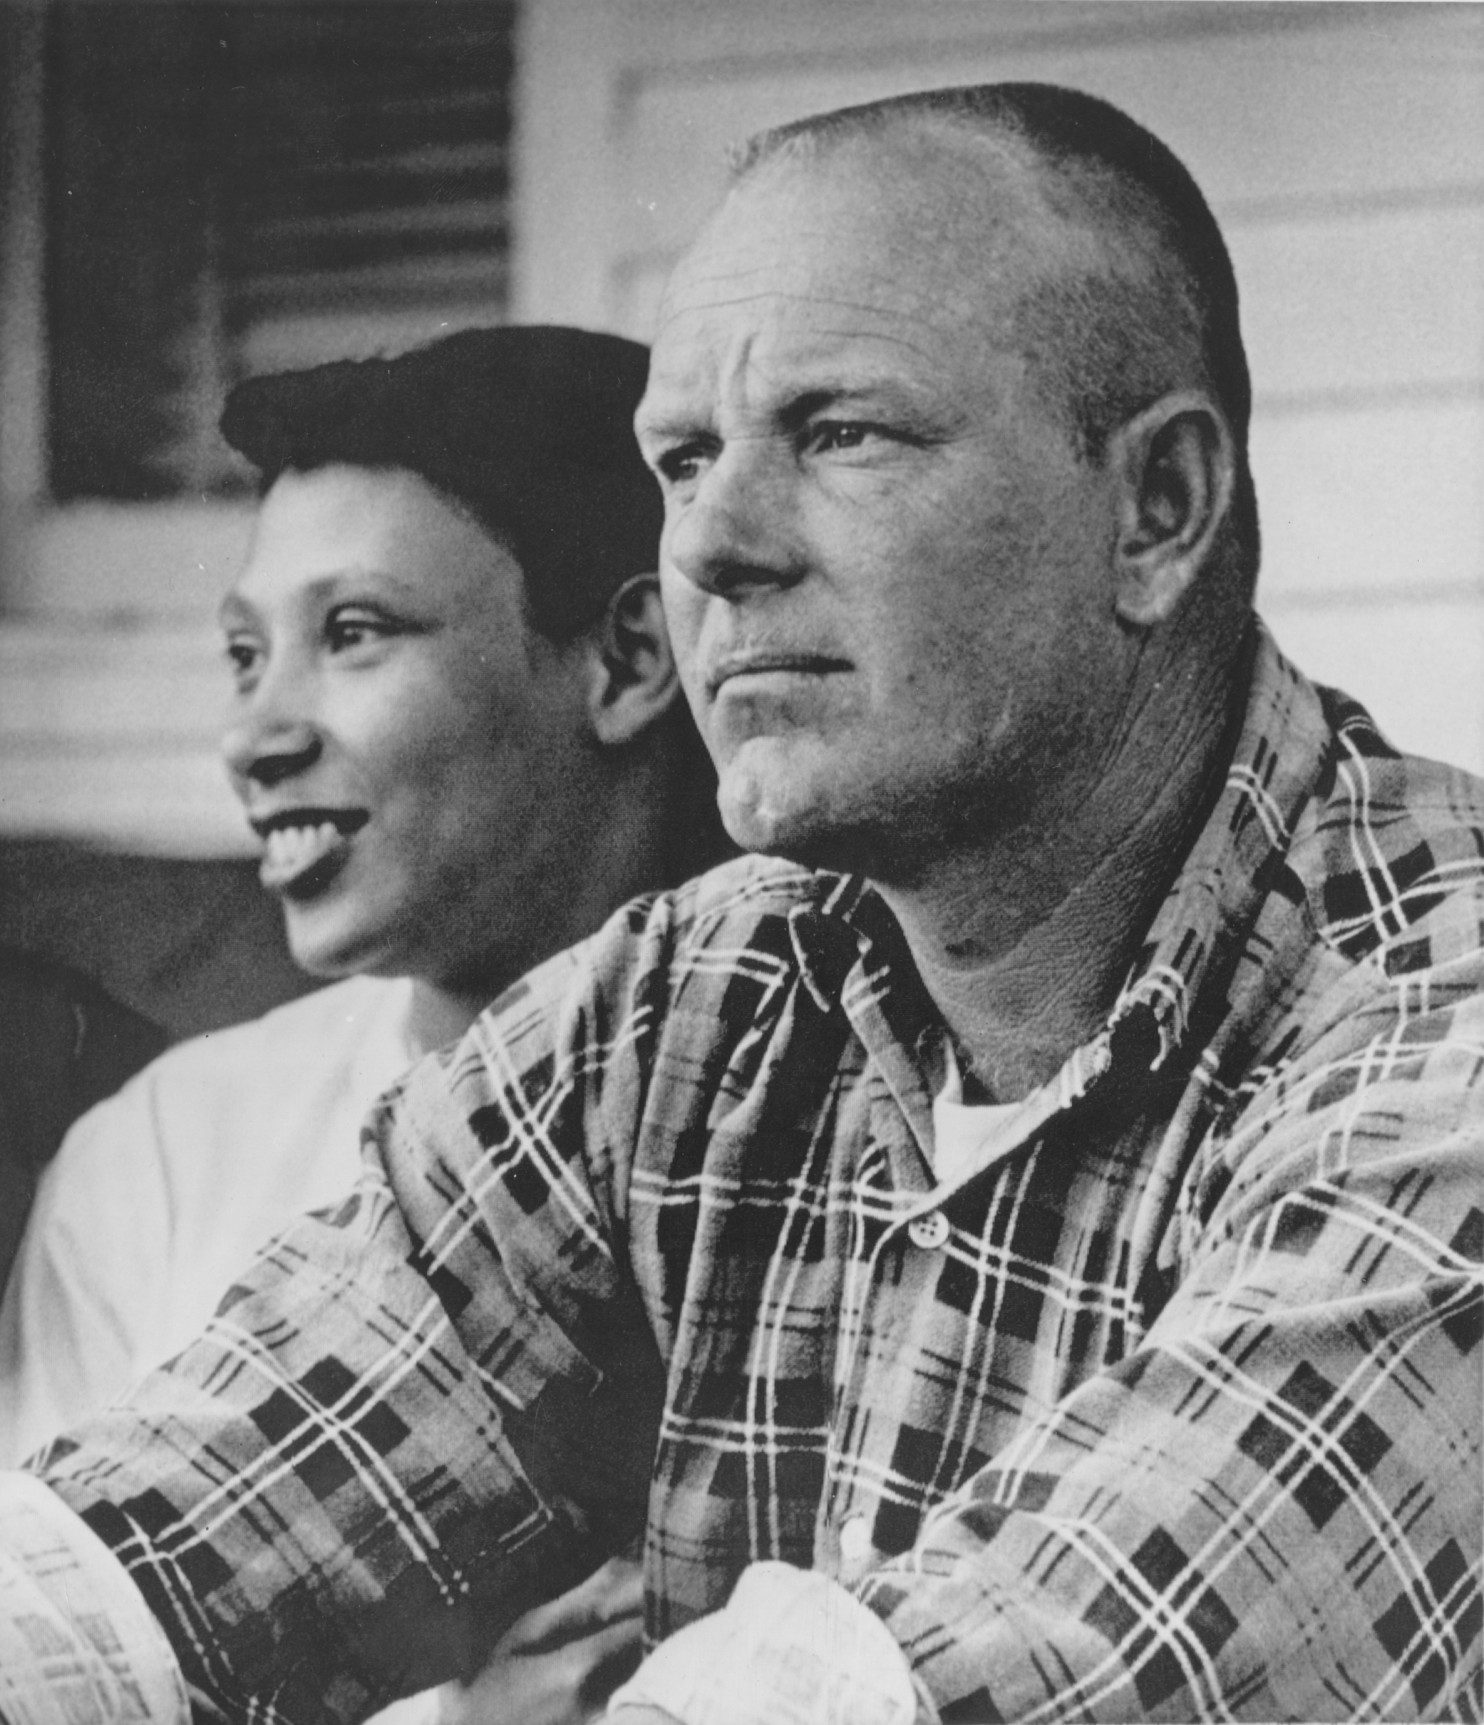 Richard and Mildred Loving, who were at the center of the case which struck down laws against interracial marriage in the US 50 years ago.